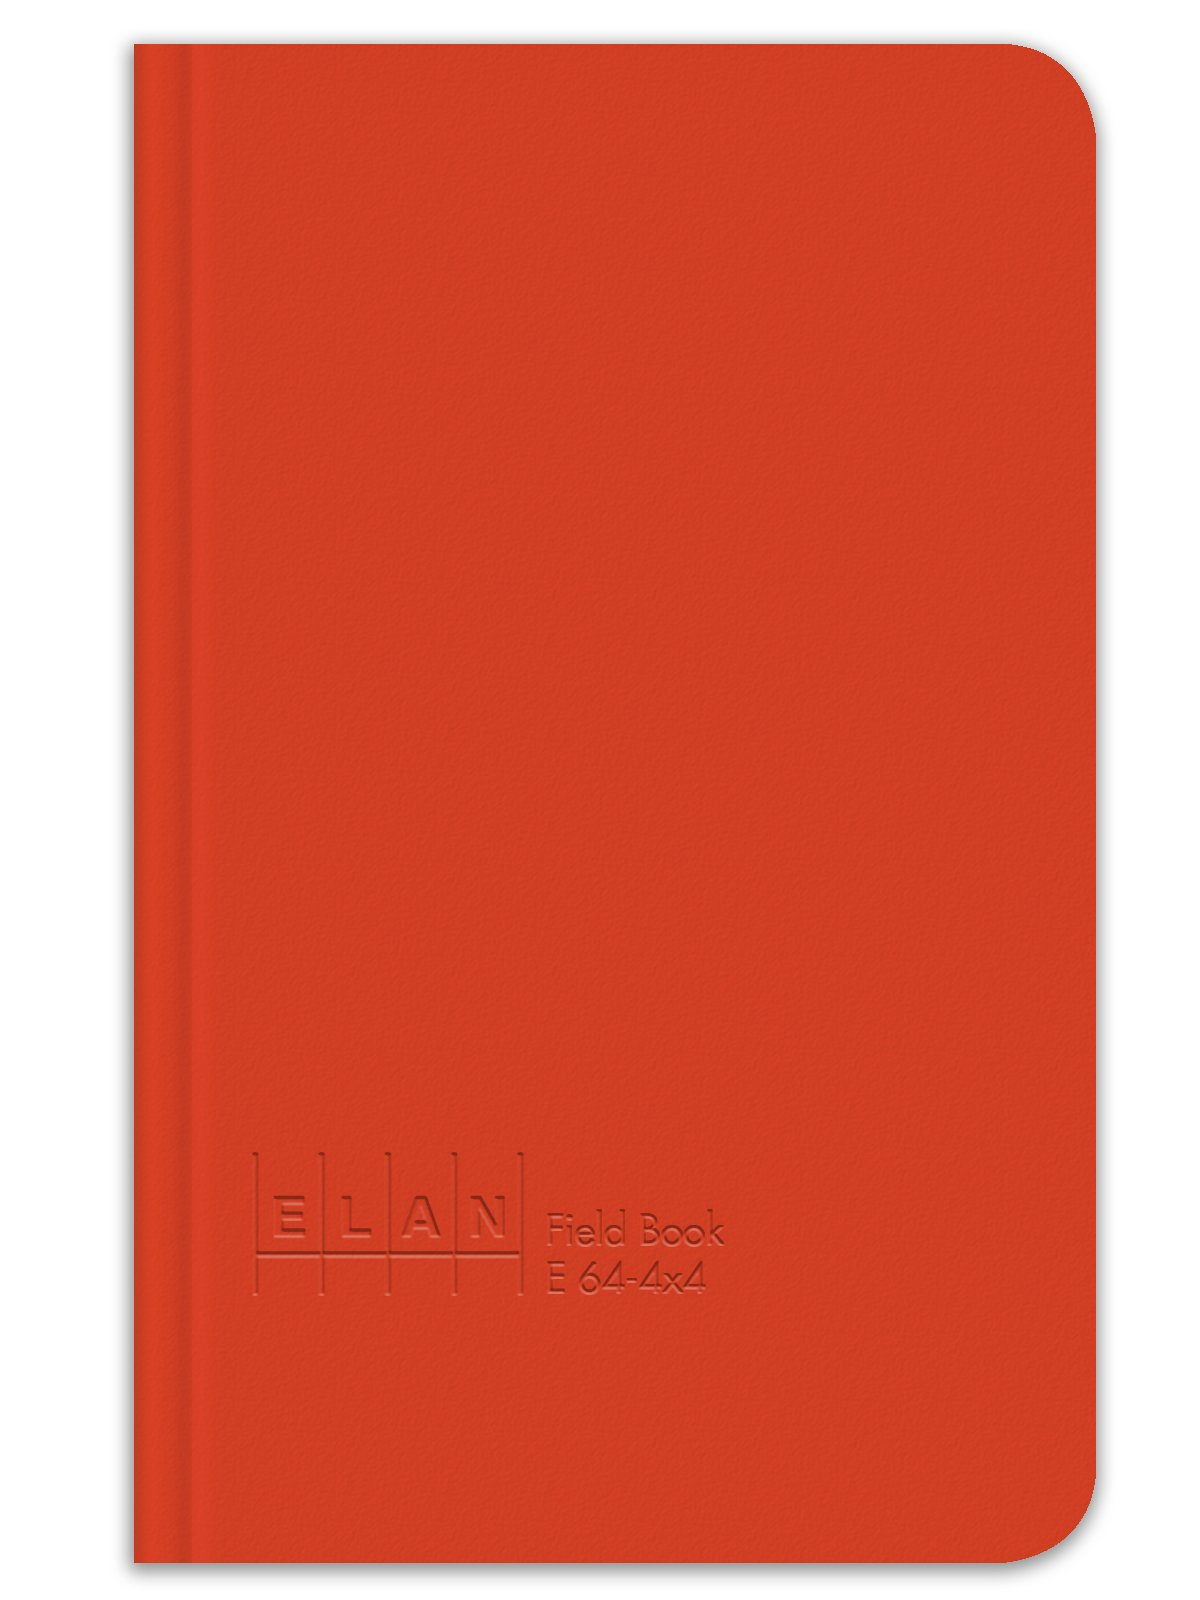 Elan Publishing Company E64-4x4 Field Surveying Book 4 ⅝ x 7 ¼, Bright Orange Cover (Pack of 48)